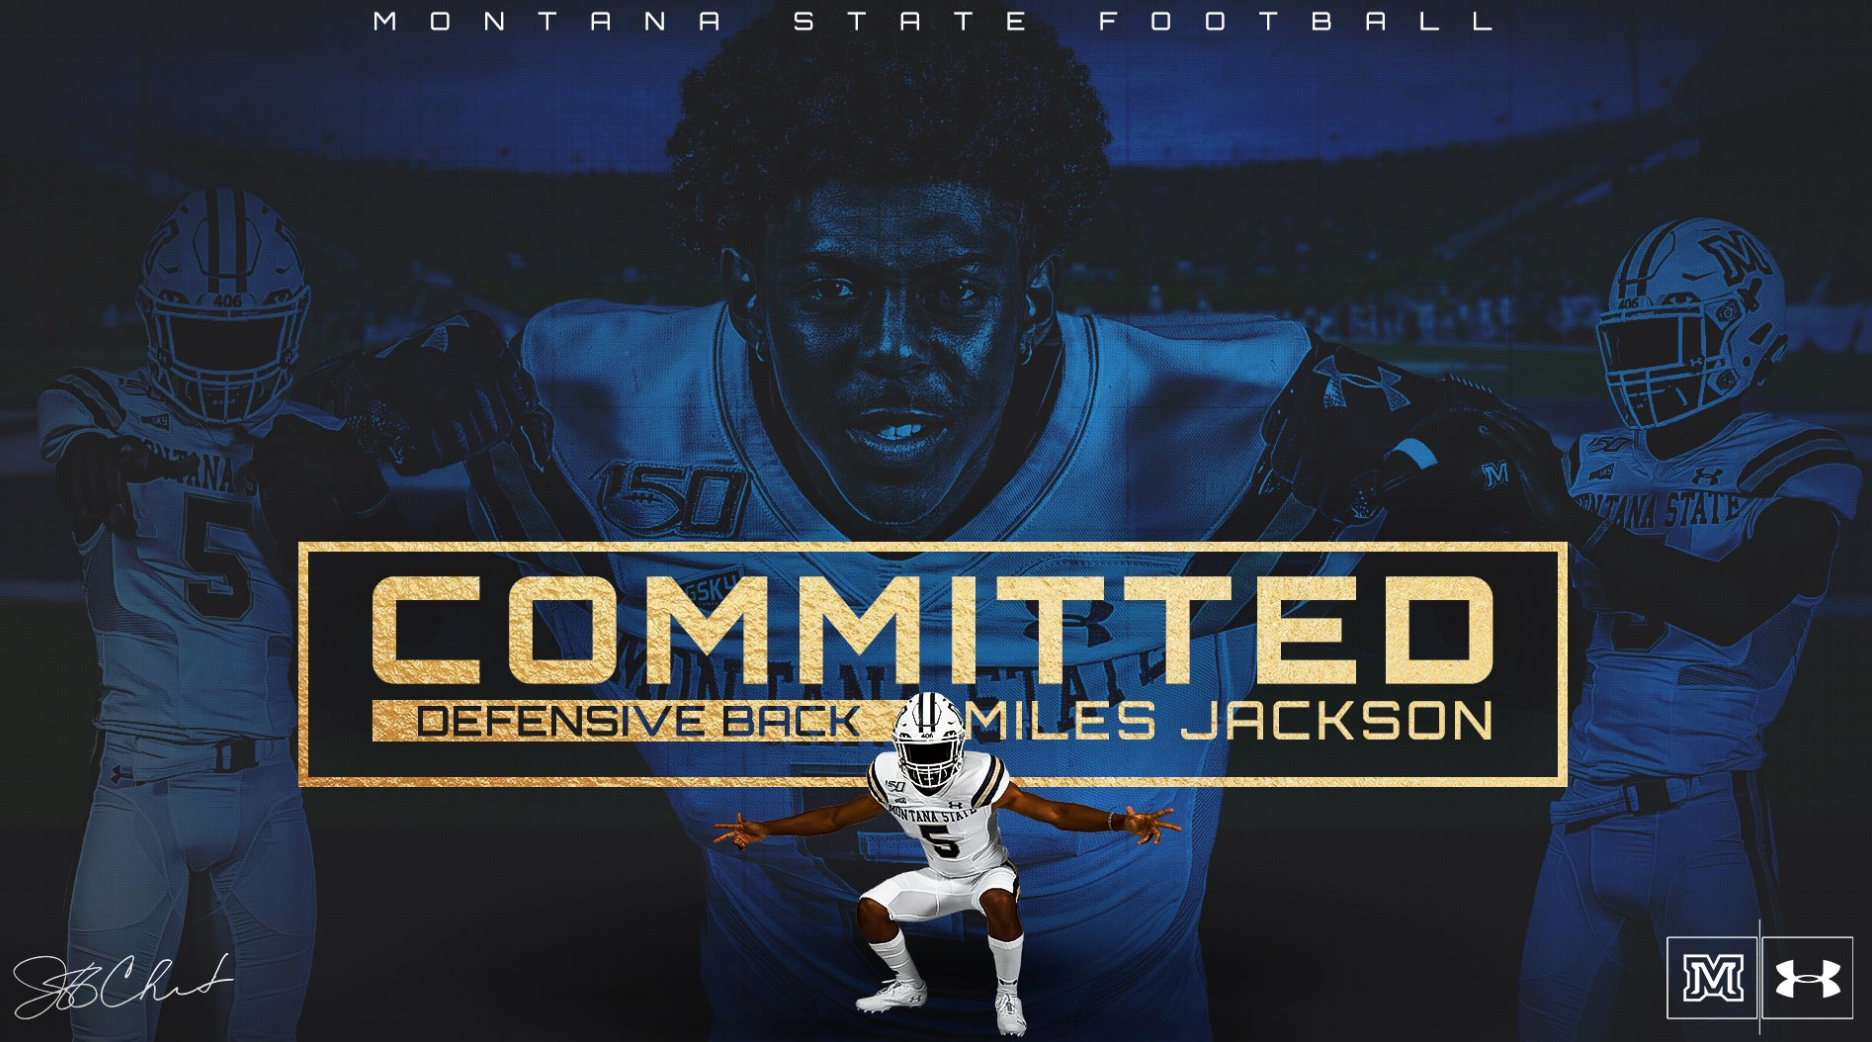 Miles Jackson, Central Catholic 3-star cornerback, commits to Montana State Bobcats